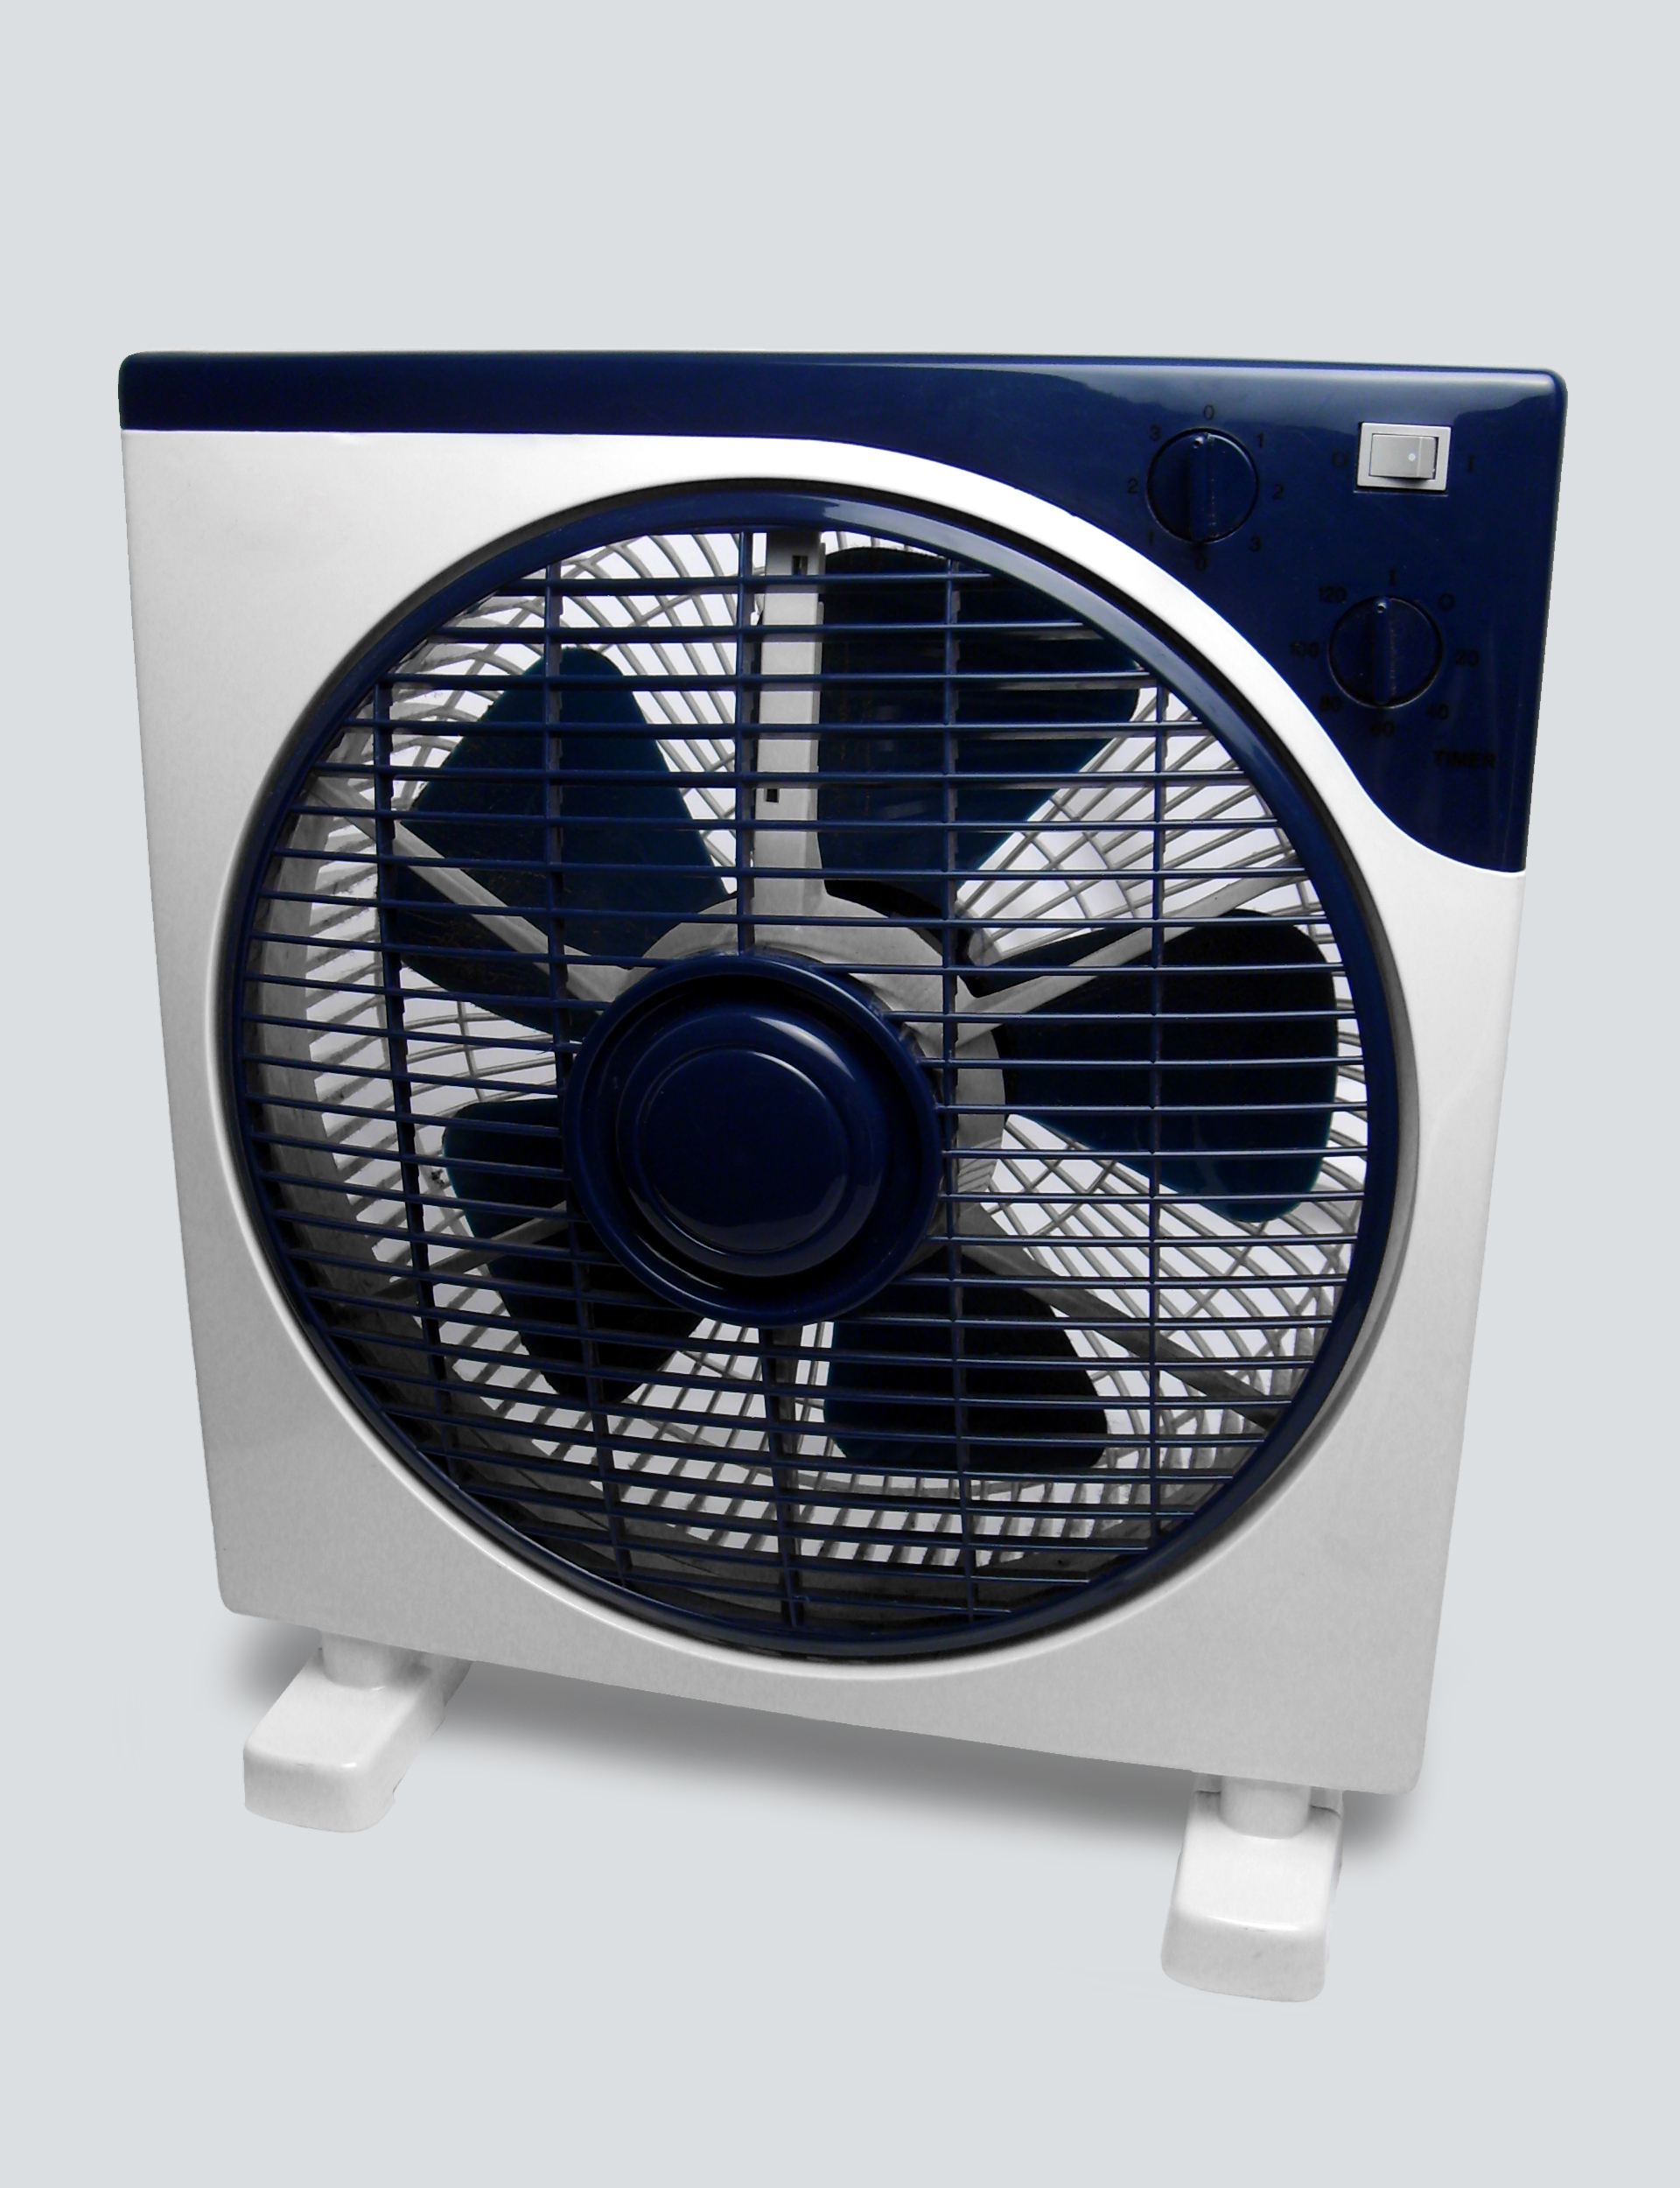 Wondrous Fan Machine Wikipedia Download Free Architecture Designs Scobabritishbridgeorg